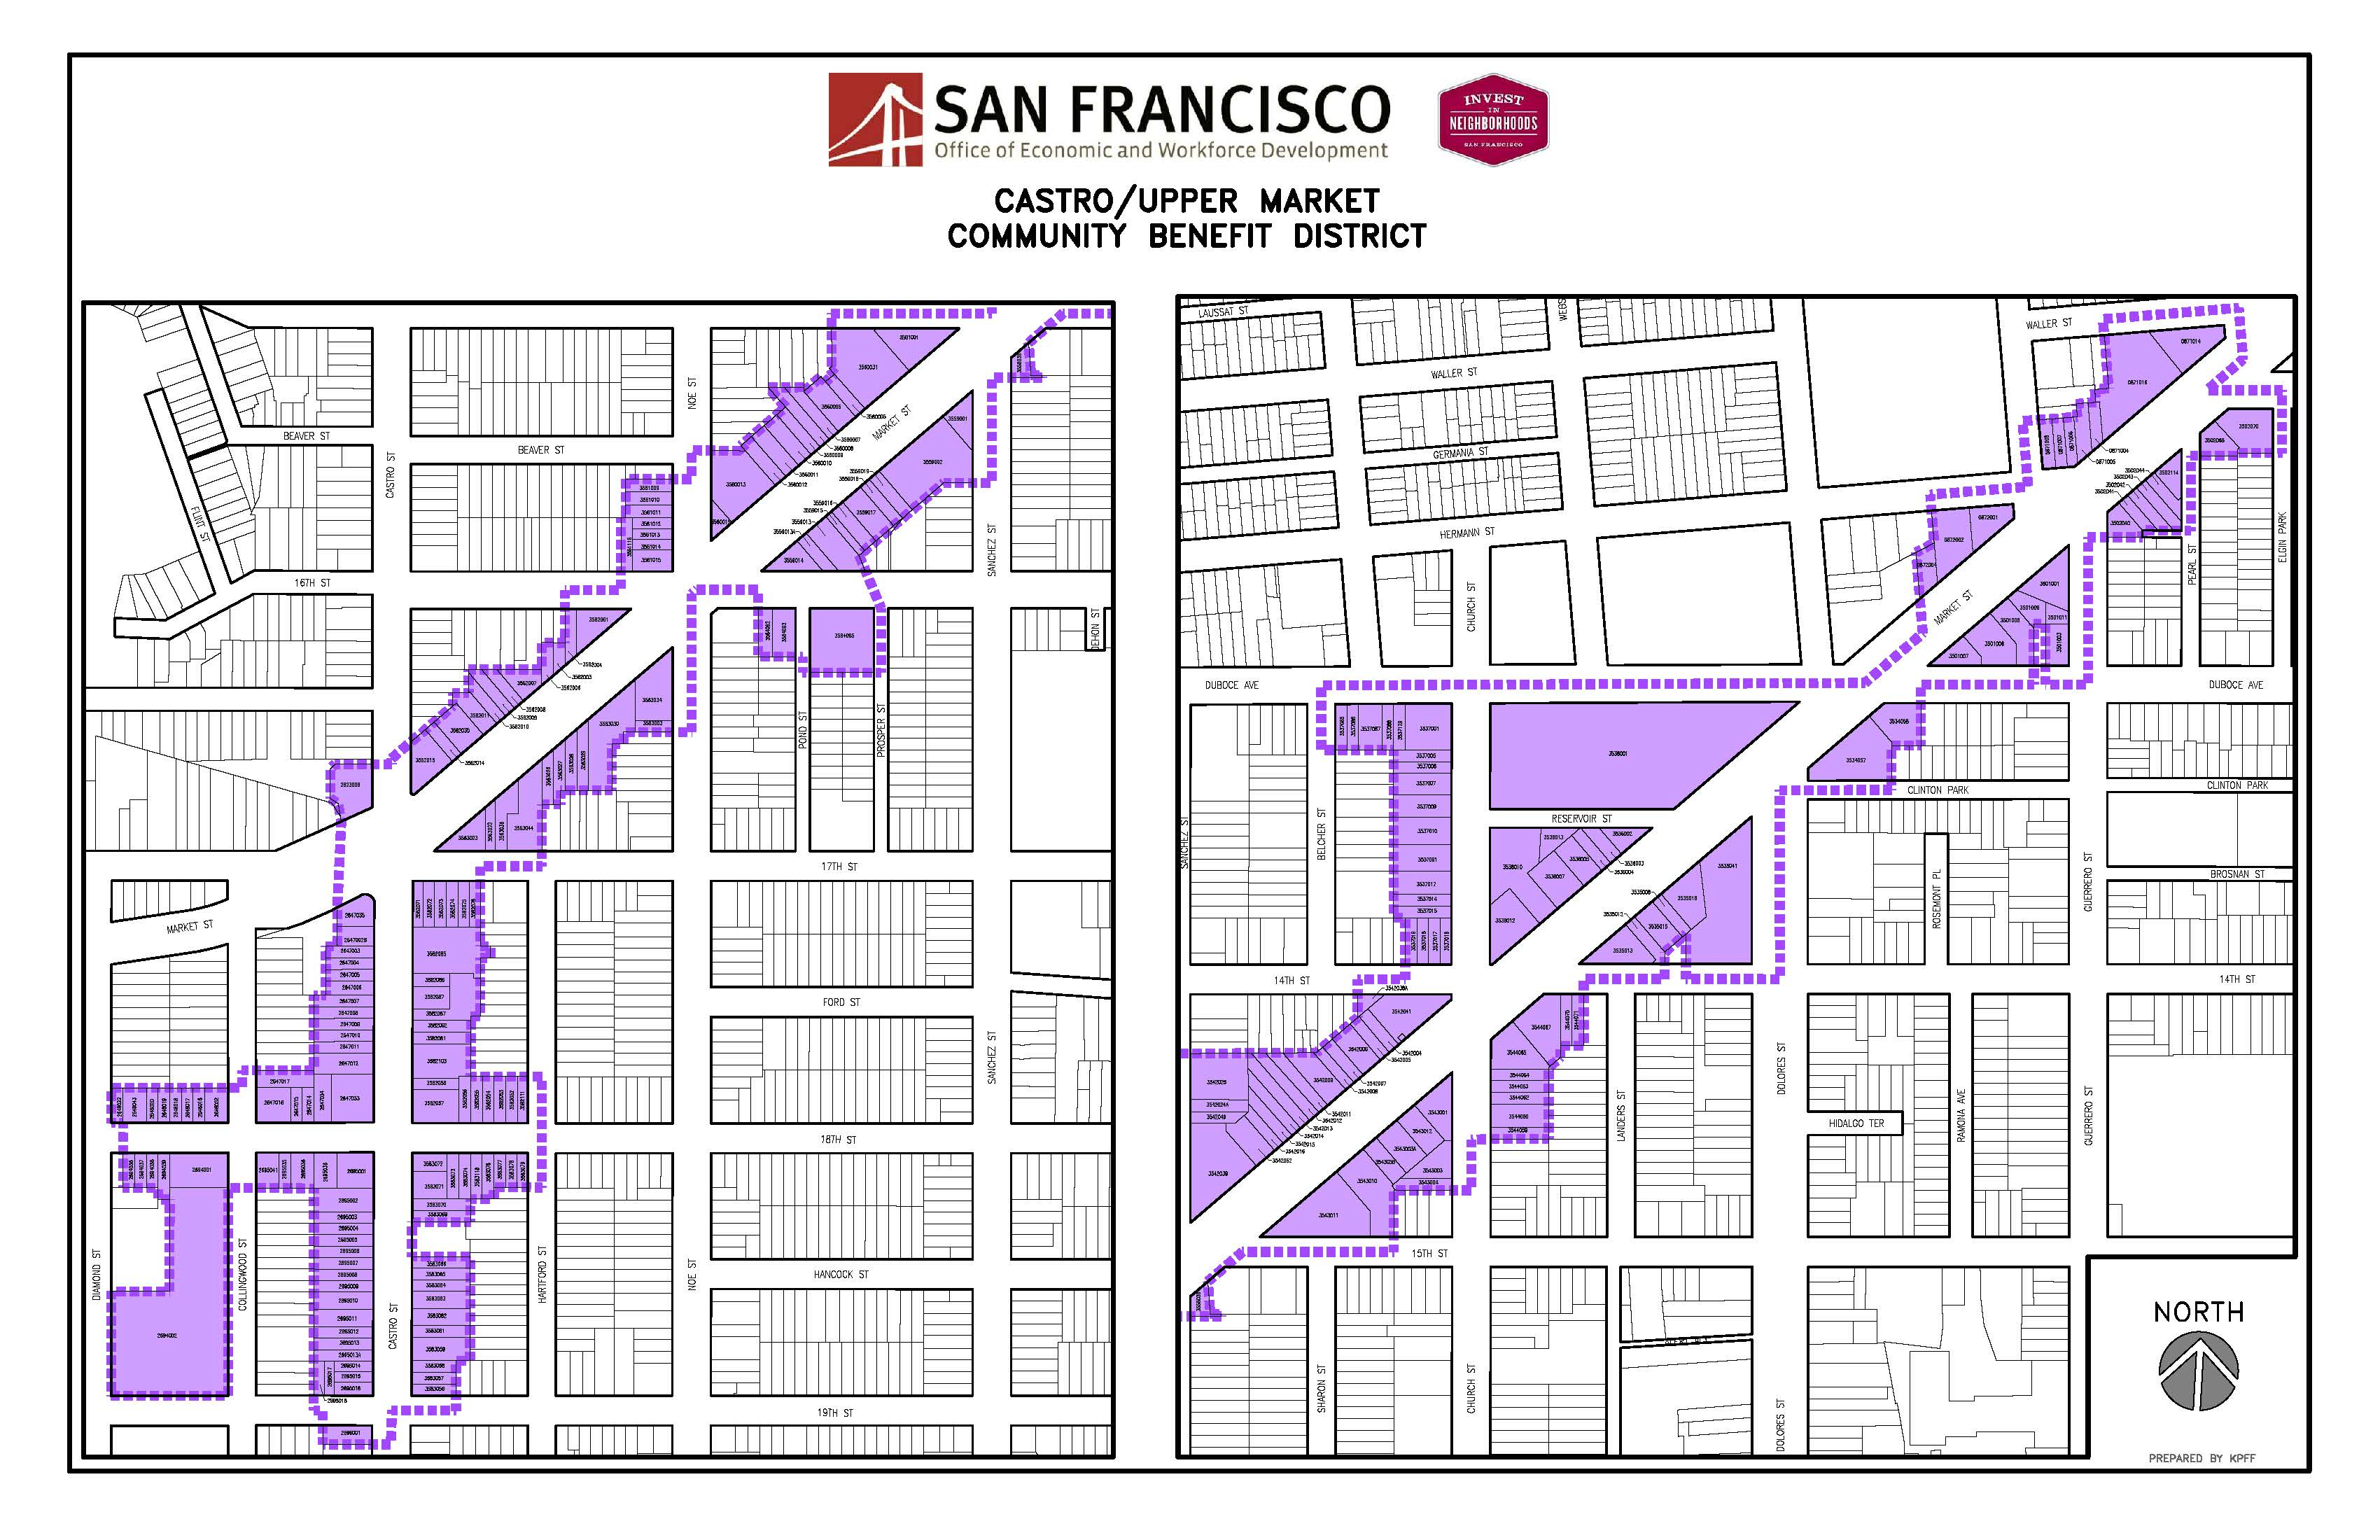 Map of Castro/Upper Market Community Benefit District